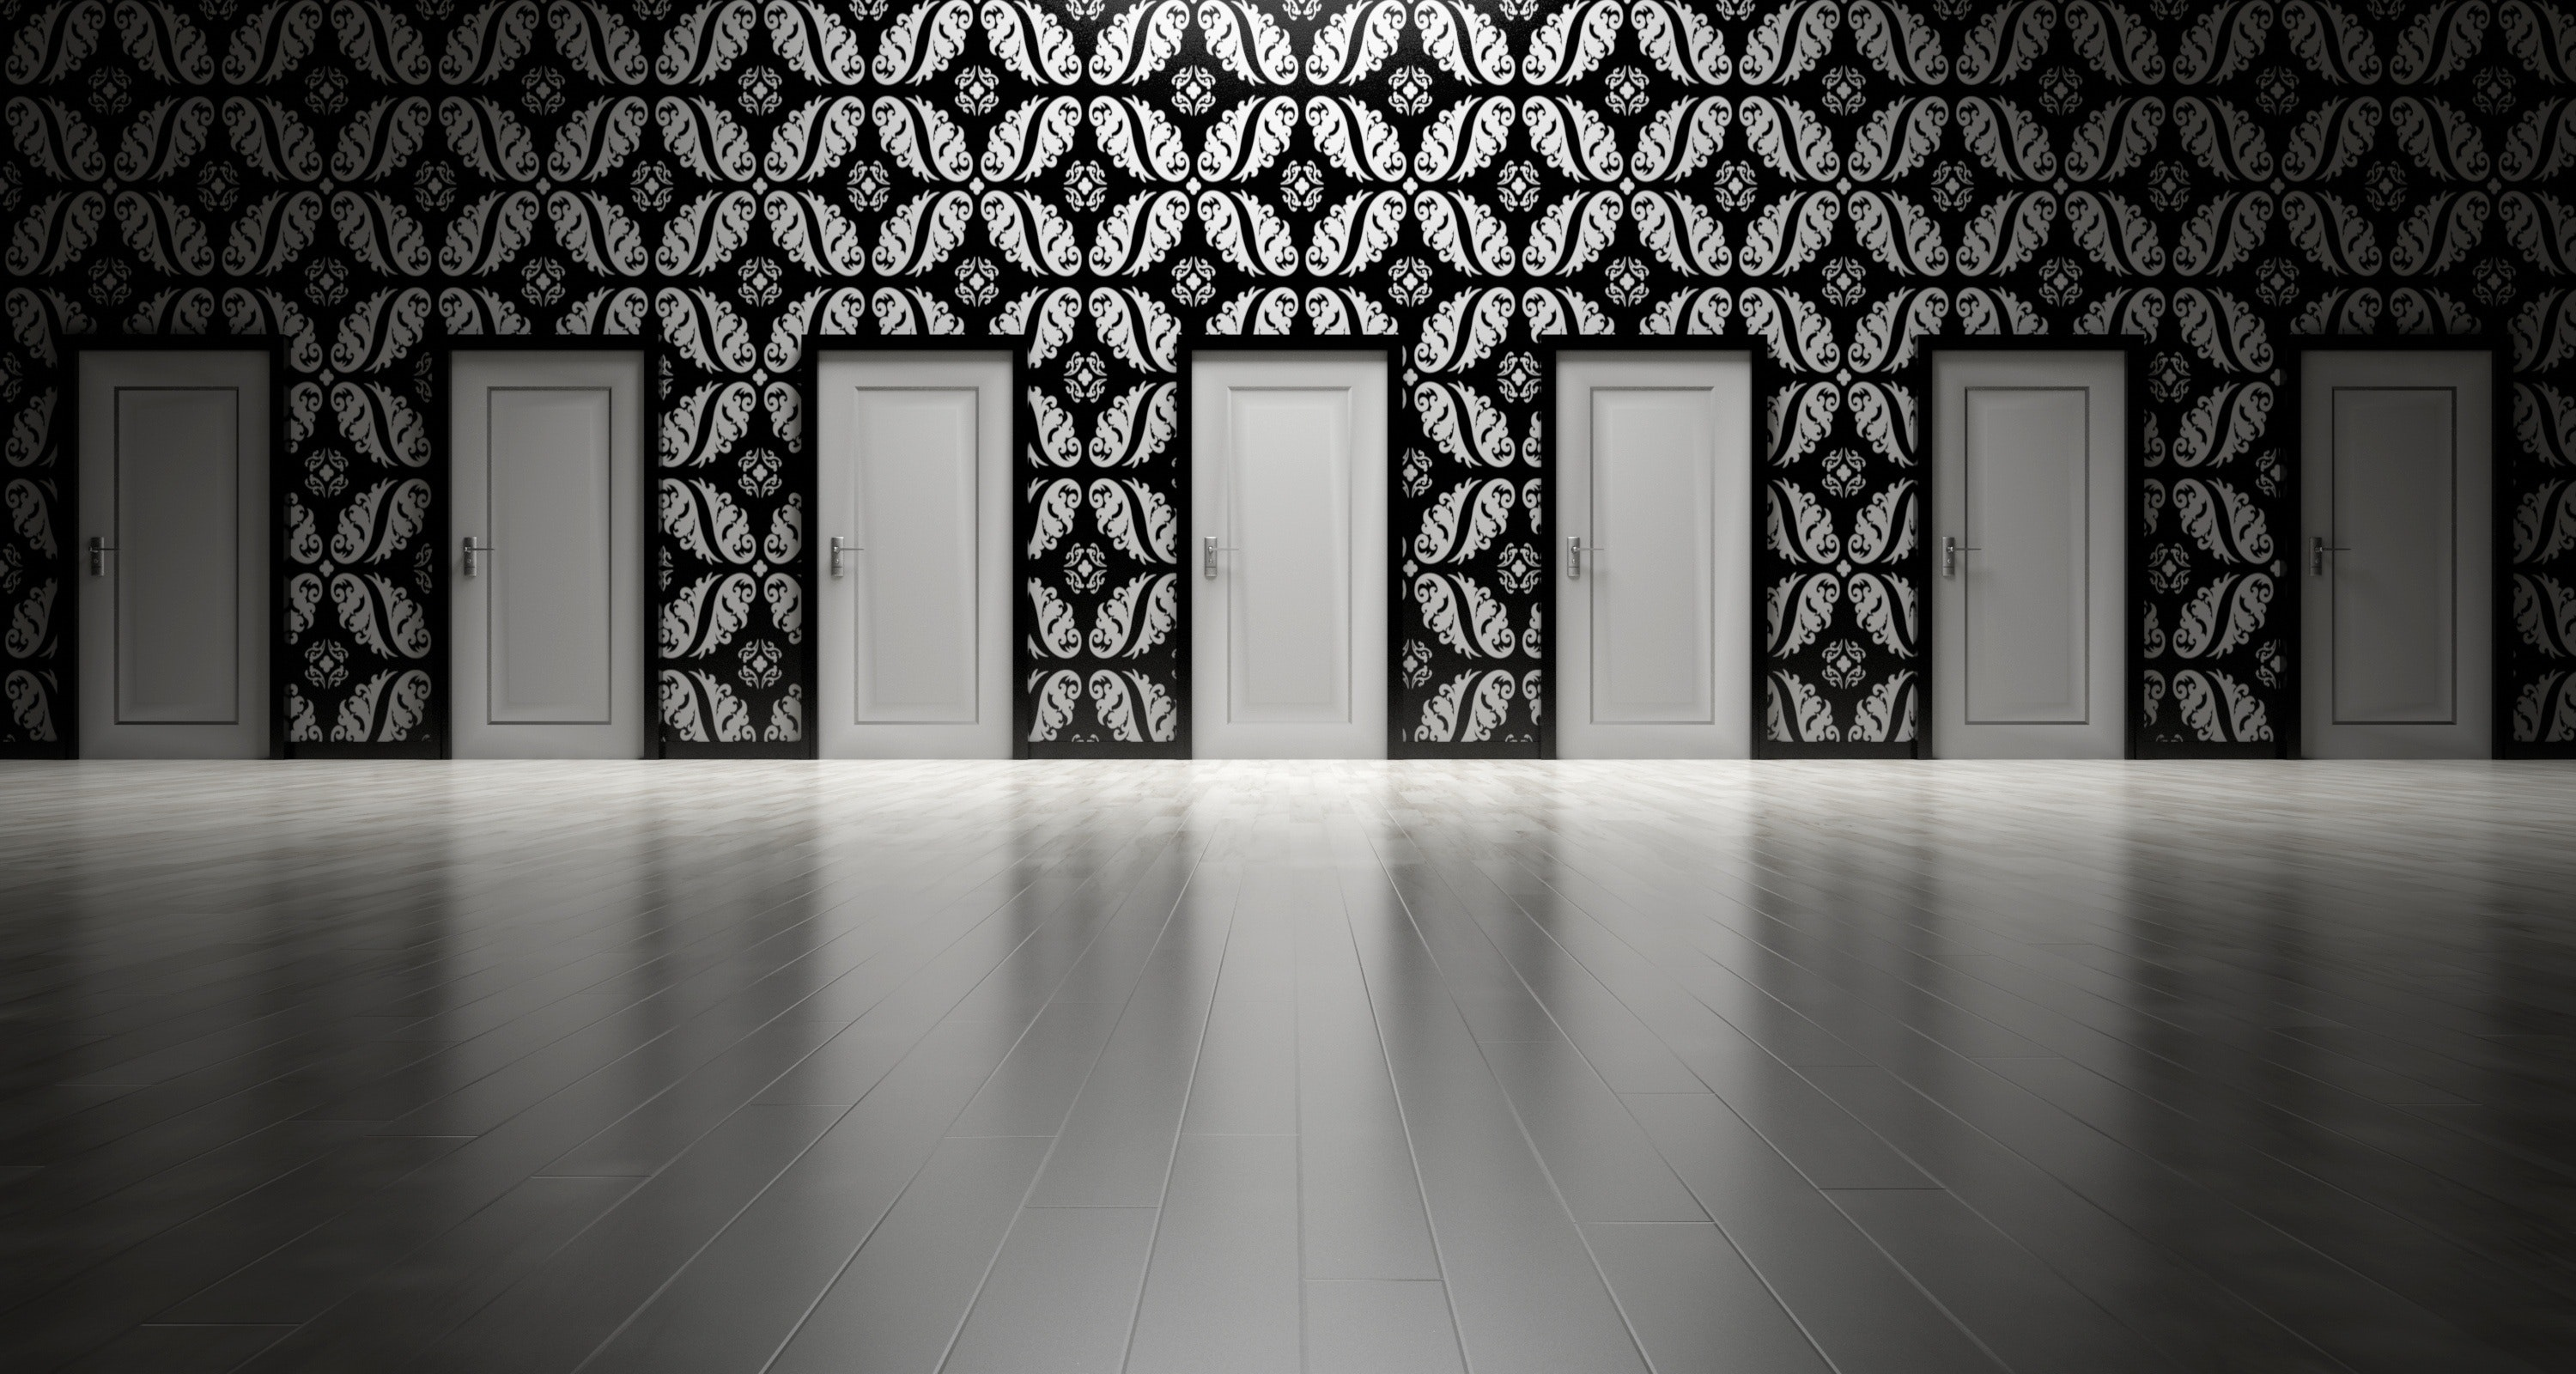 Seven white doors in a long, black wall with curly, white leaf shapes.